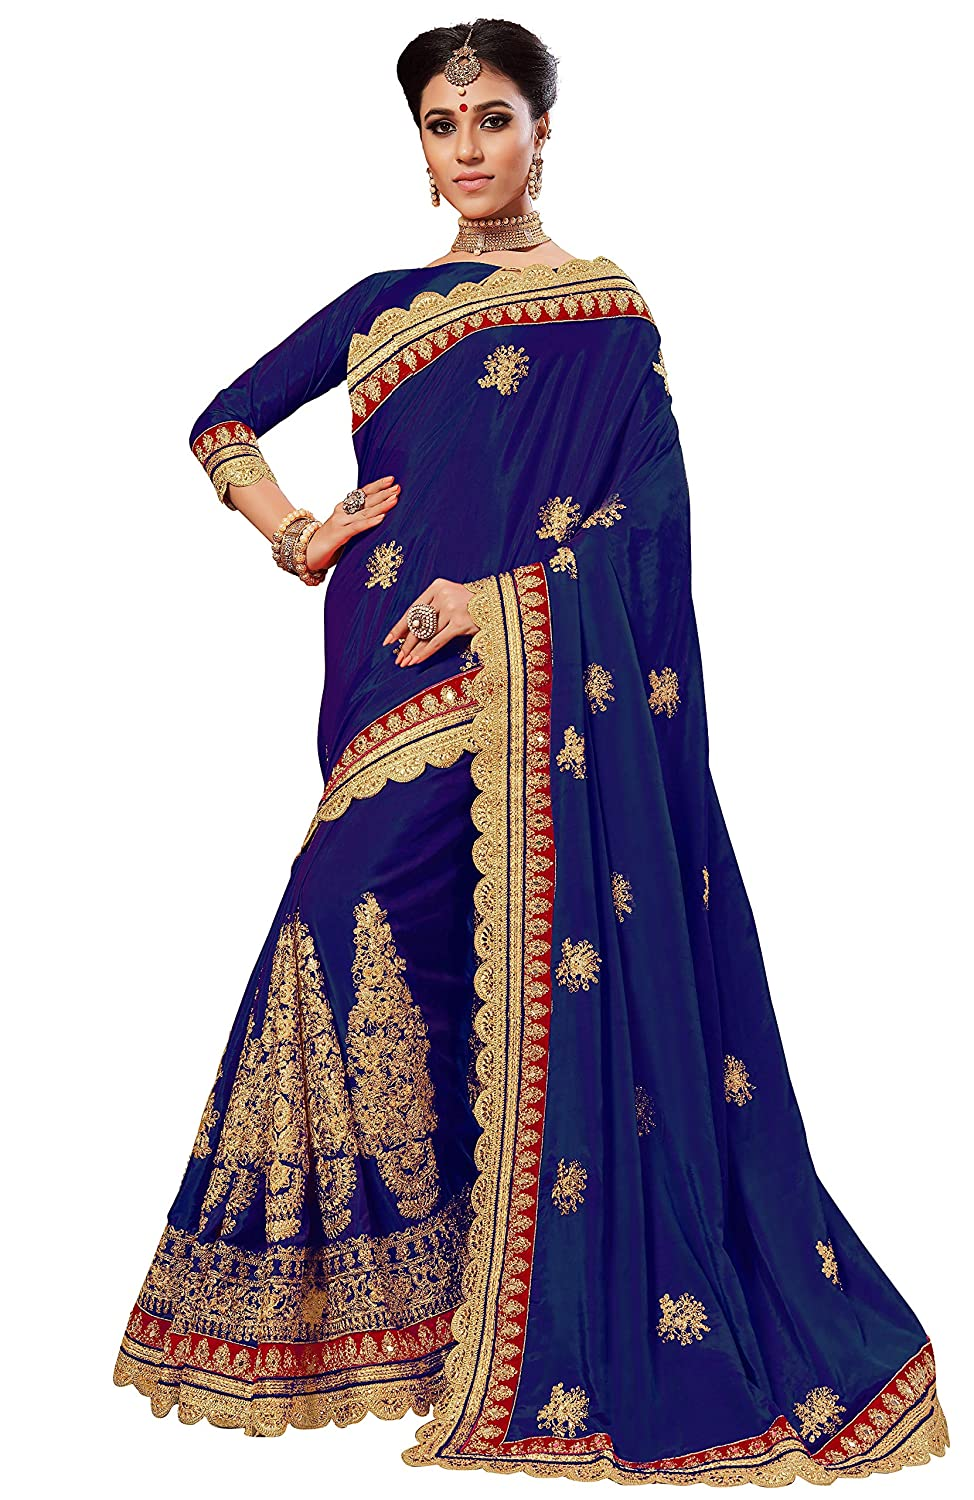 bluee Nivah Fashion Women's Silk Embroidery & Codding work With Diamond Material Saree